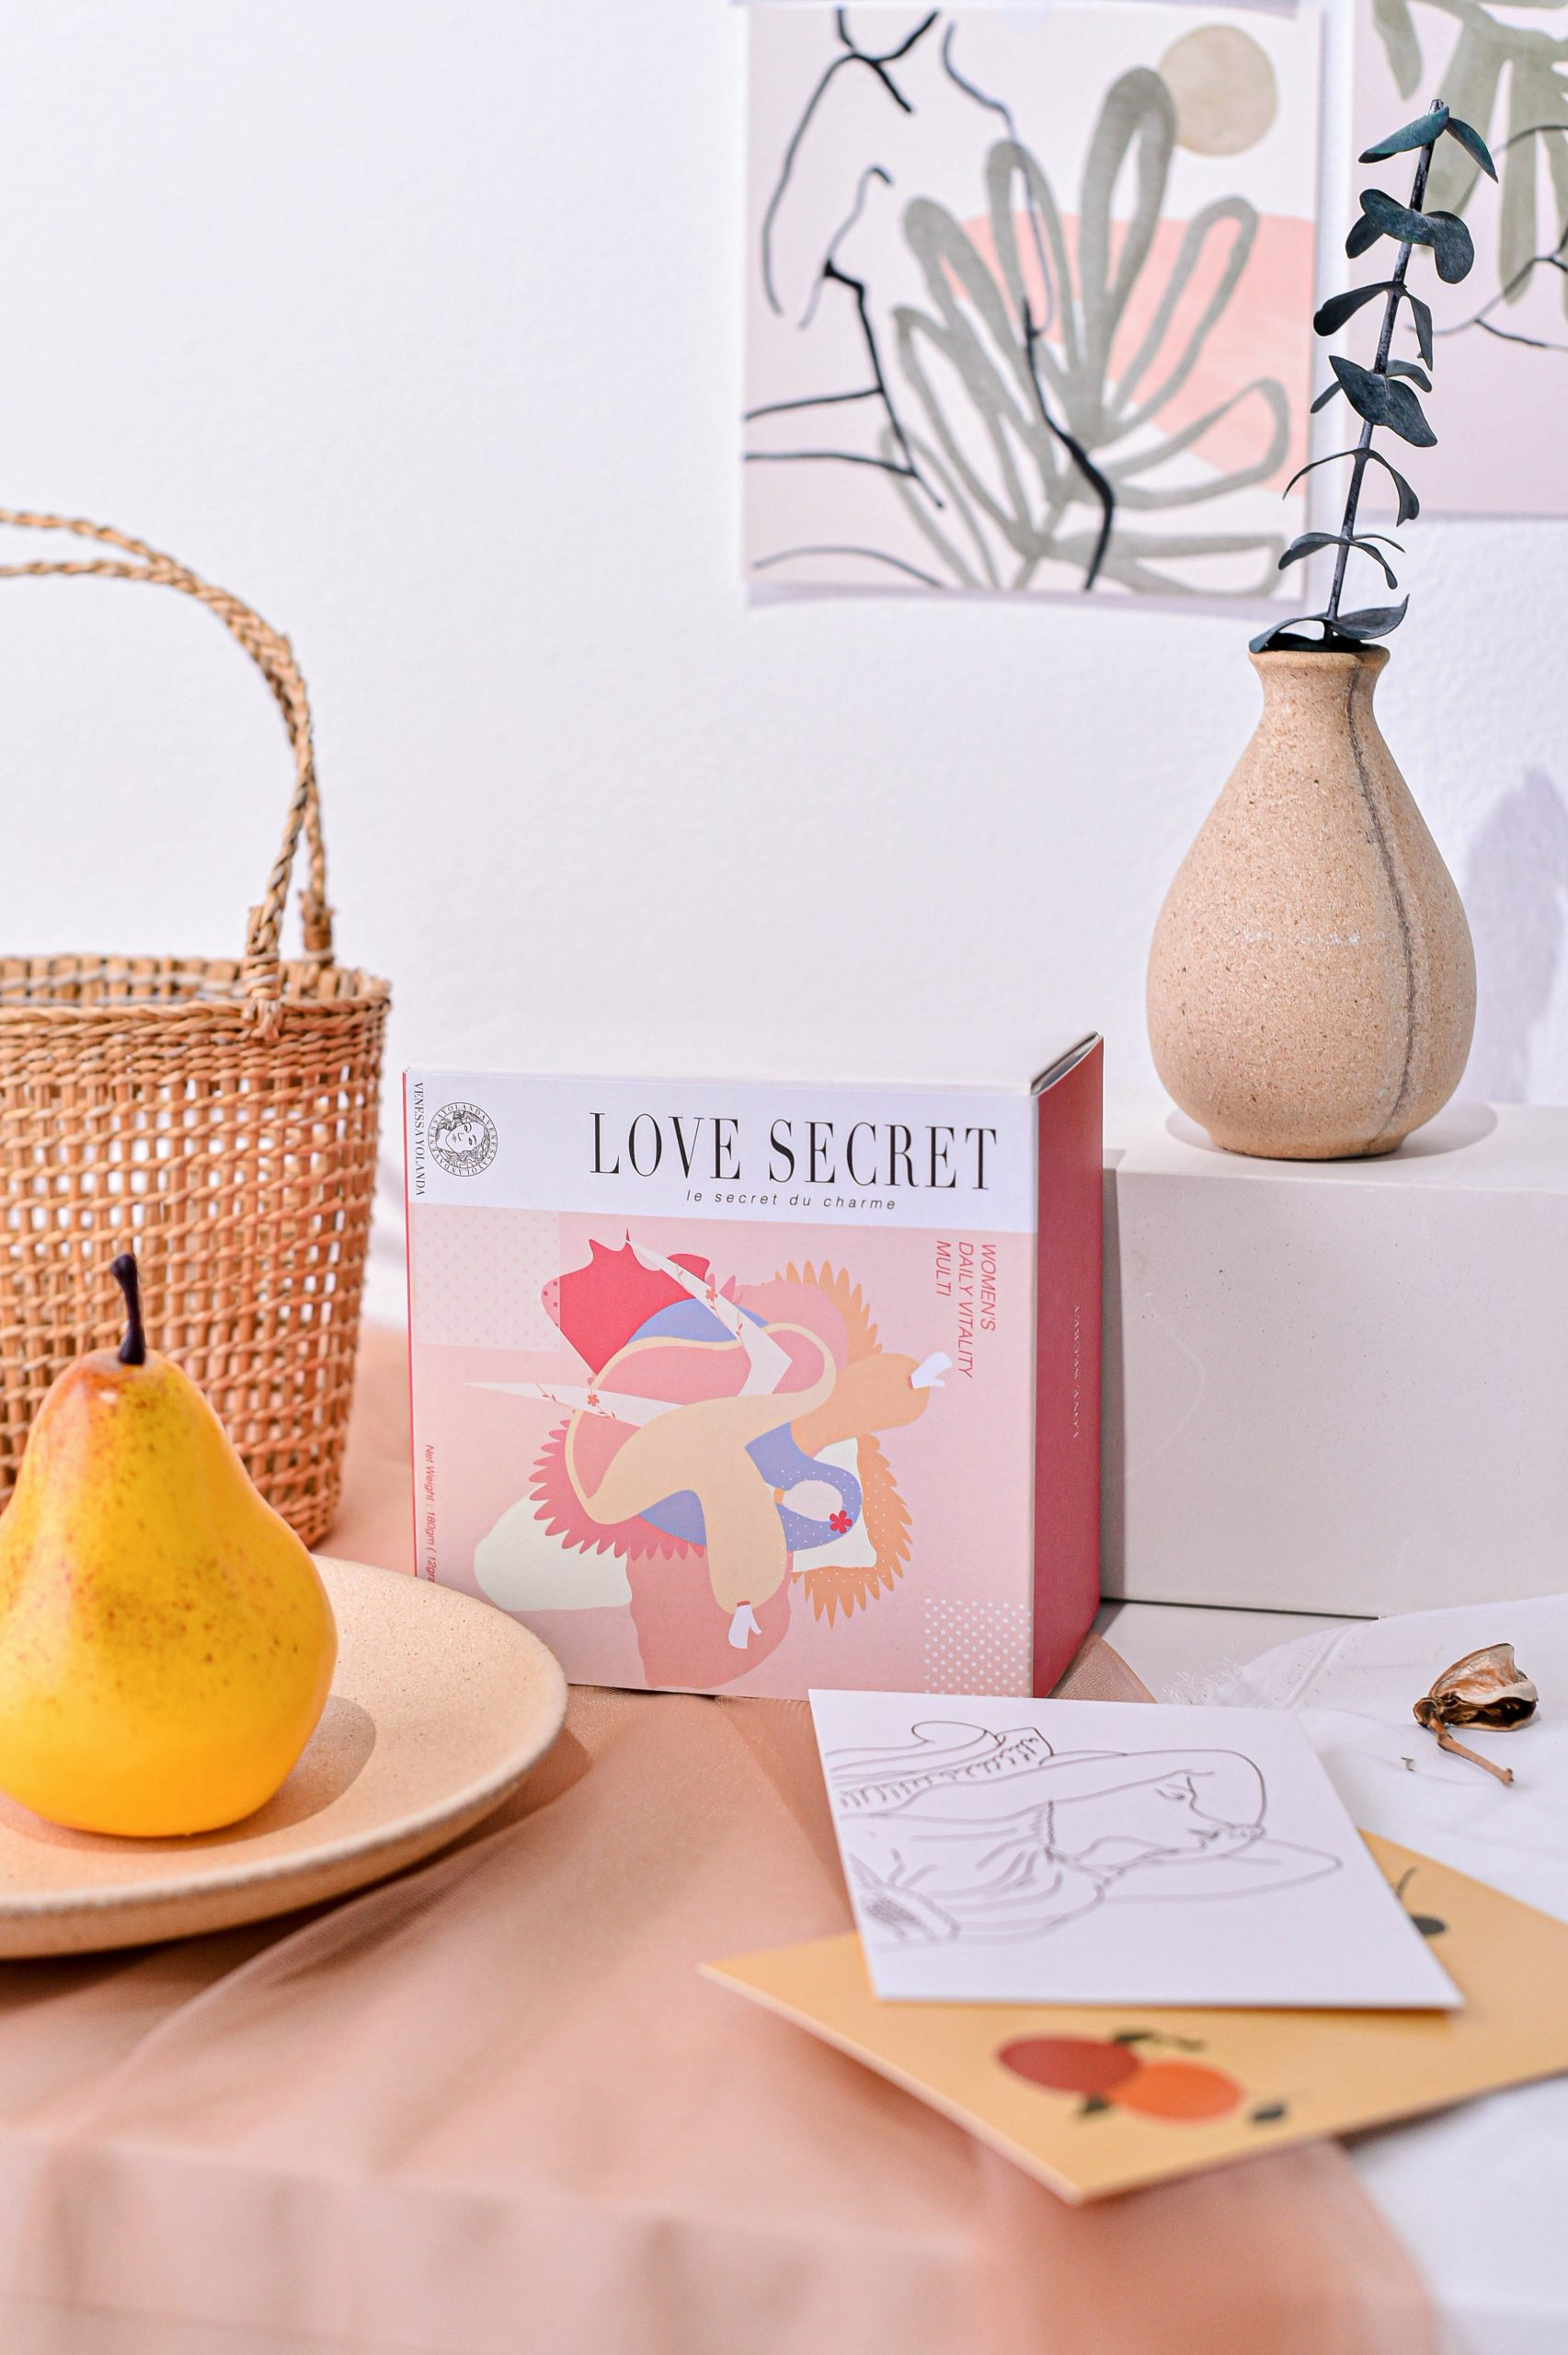 Product Photo Shooting for Love Secret 8 scaled